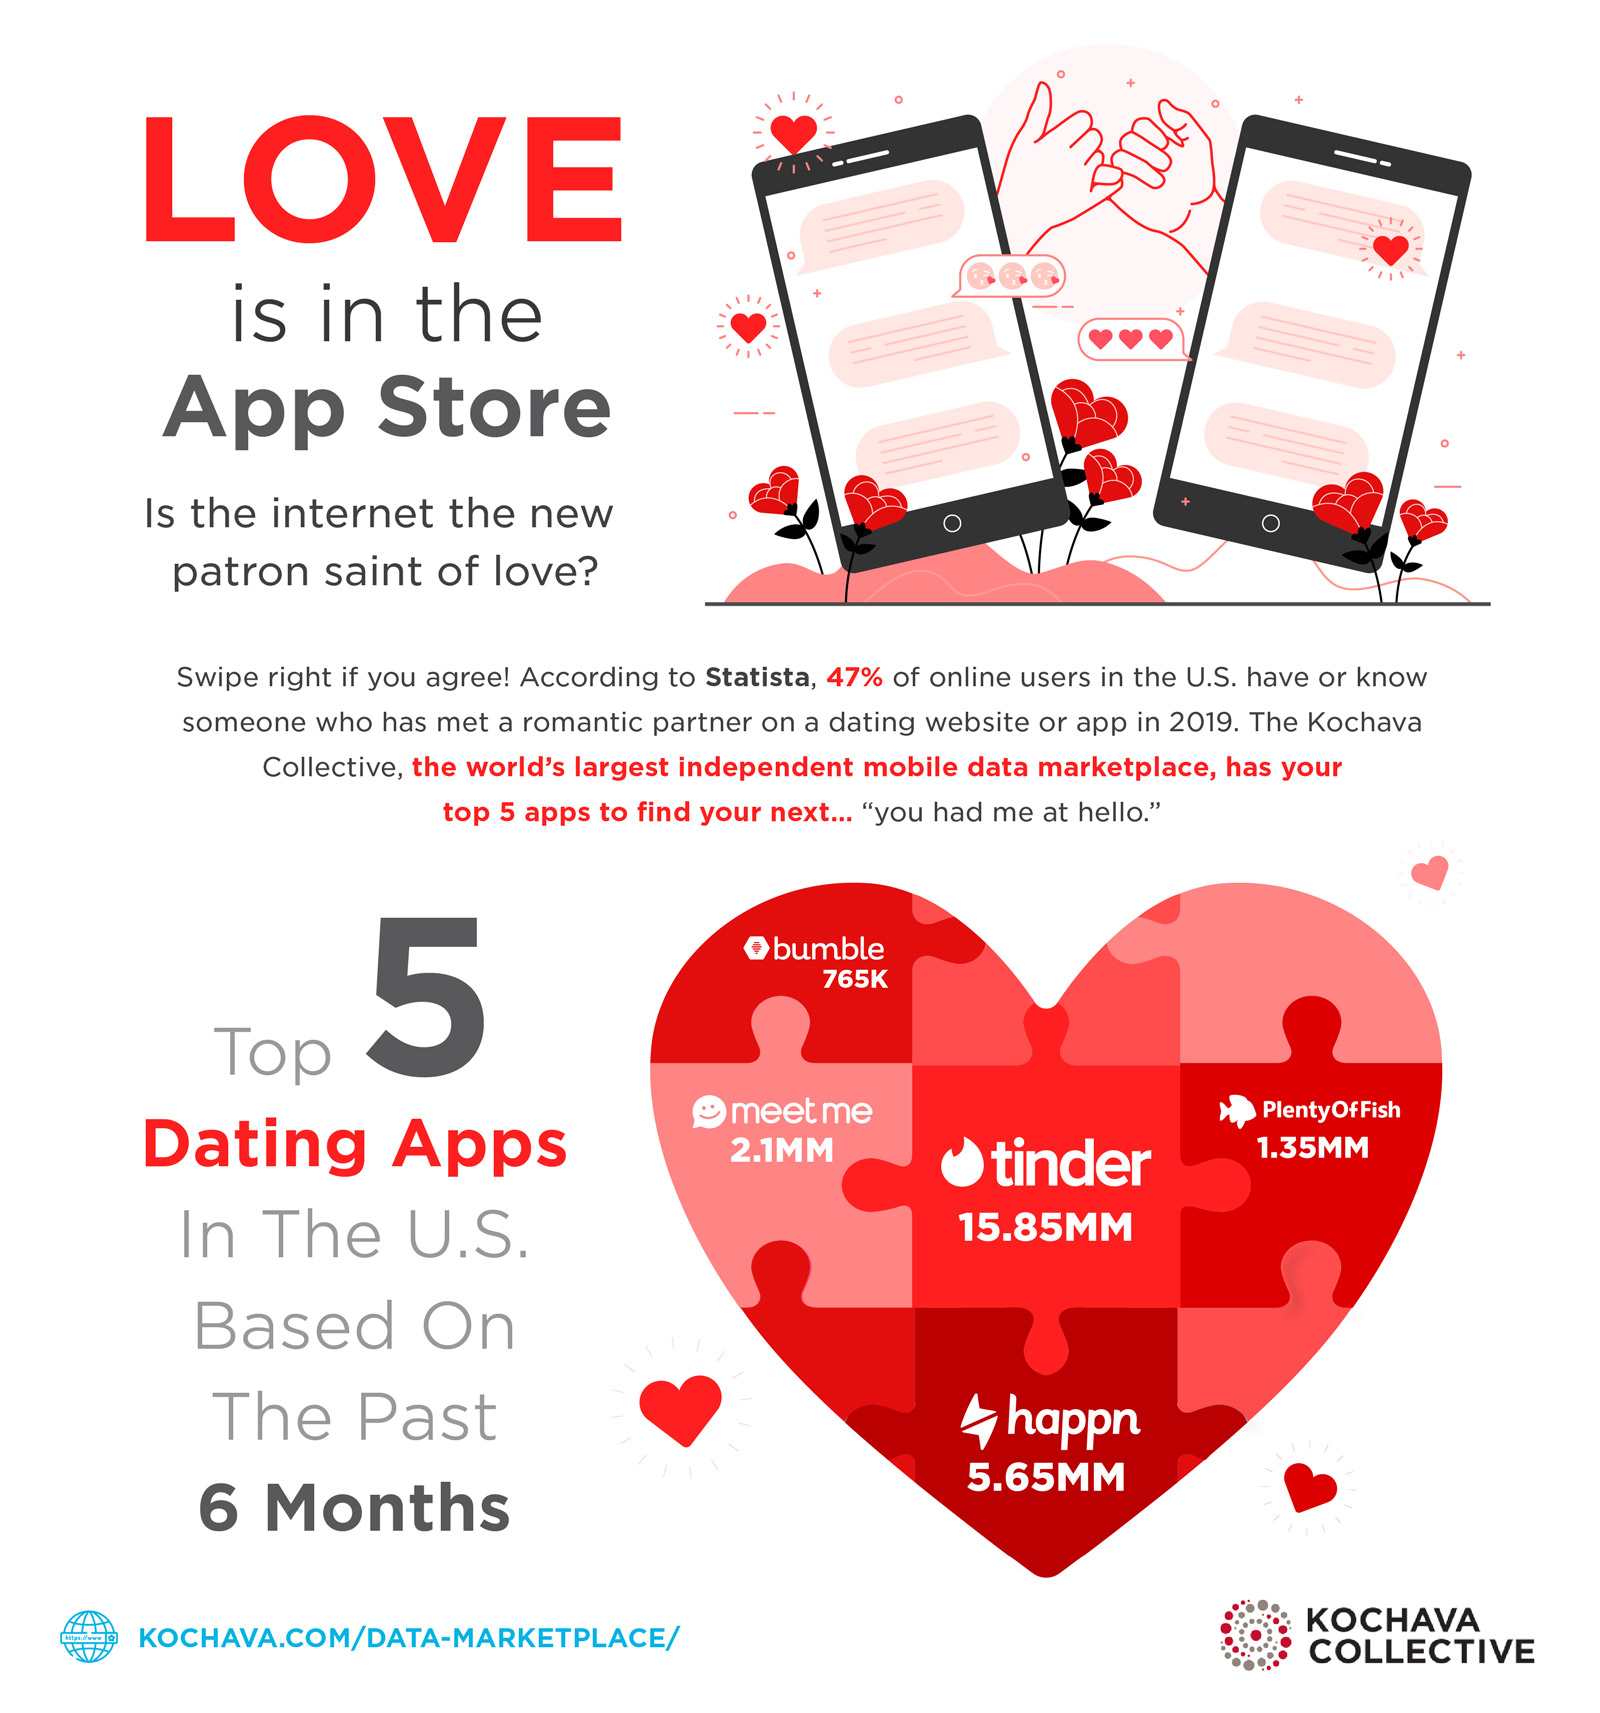 Top 5 dating apps for Valentine's Day